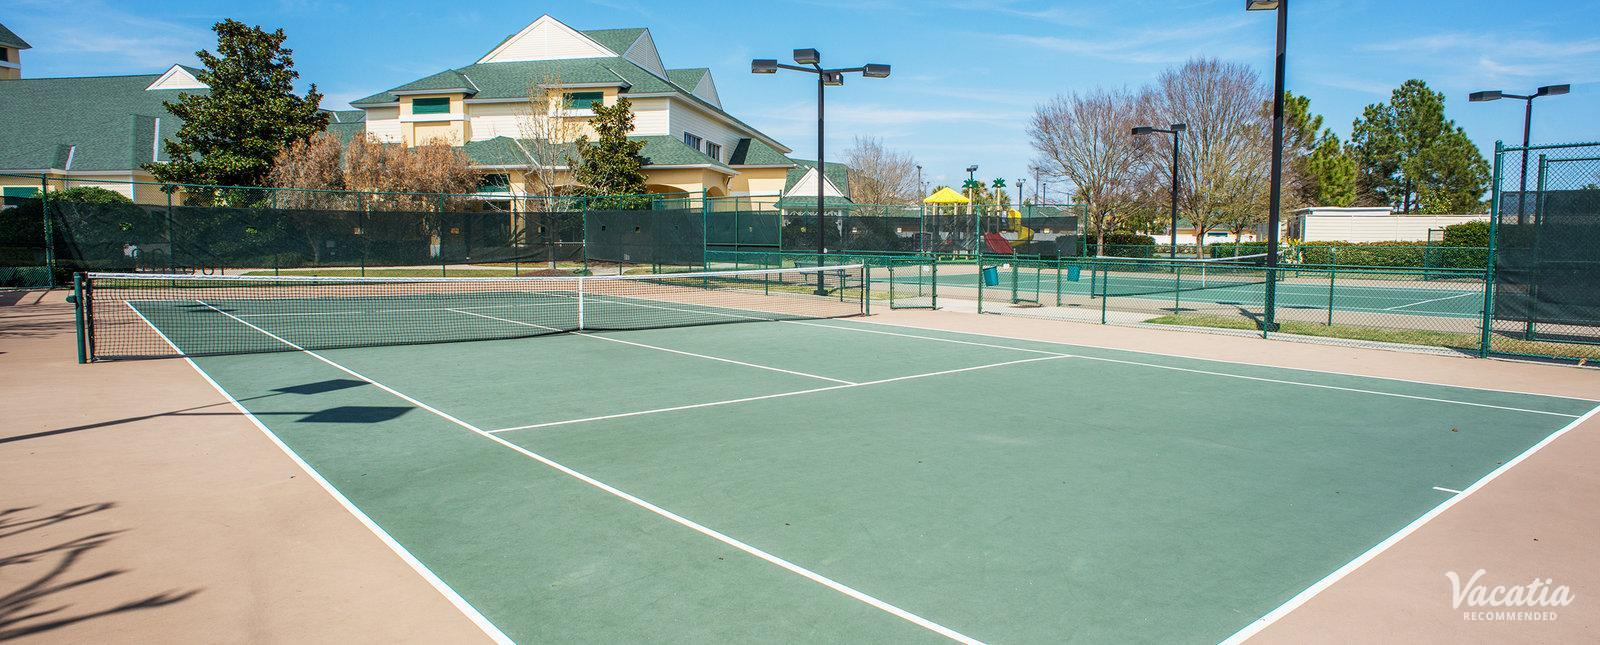 Sheraton Broadway Plantation Resort Villas resort tennis courts